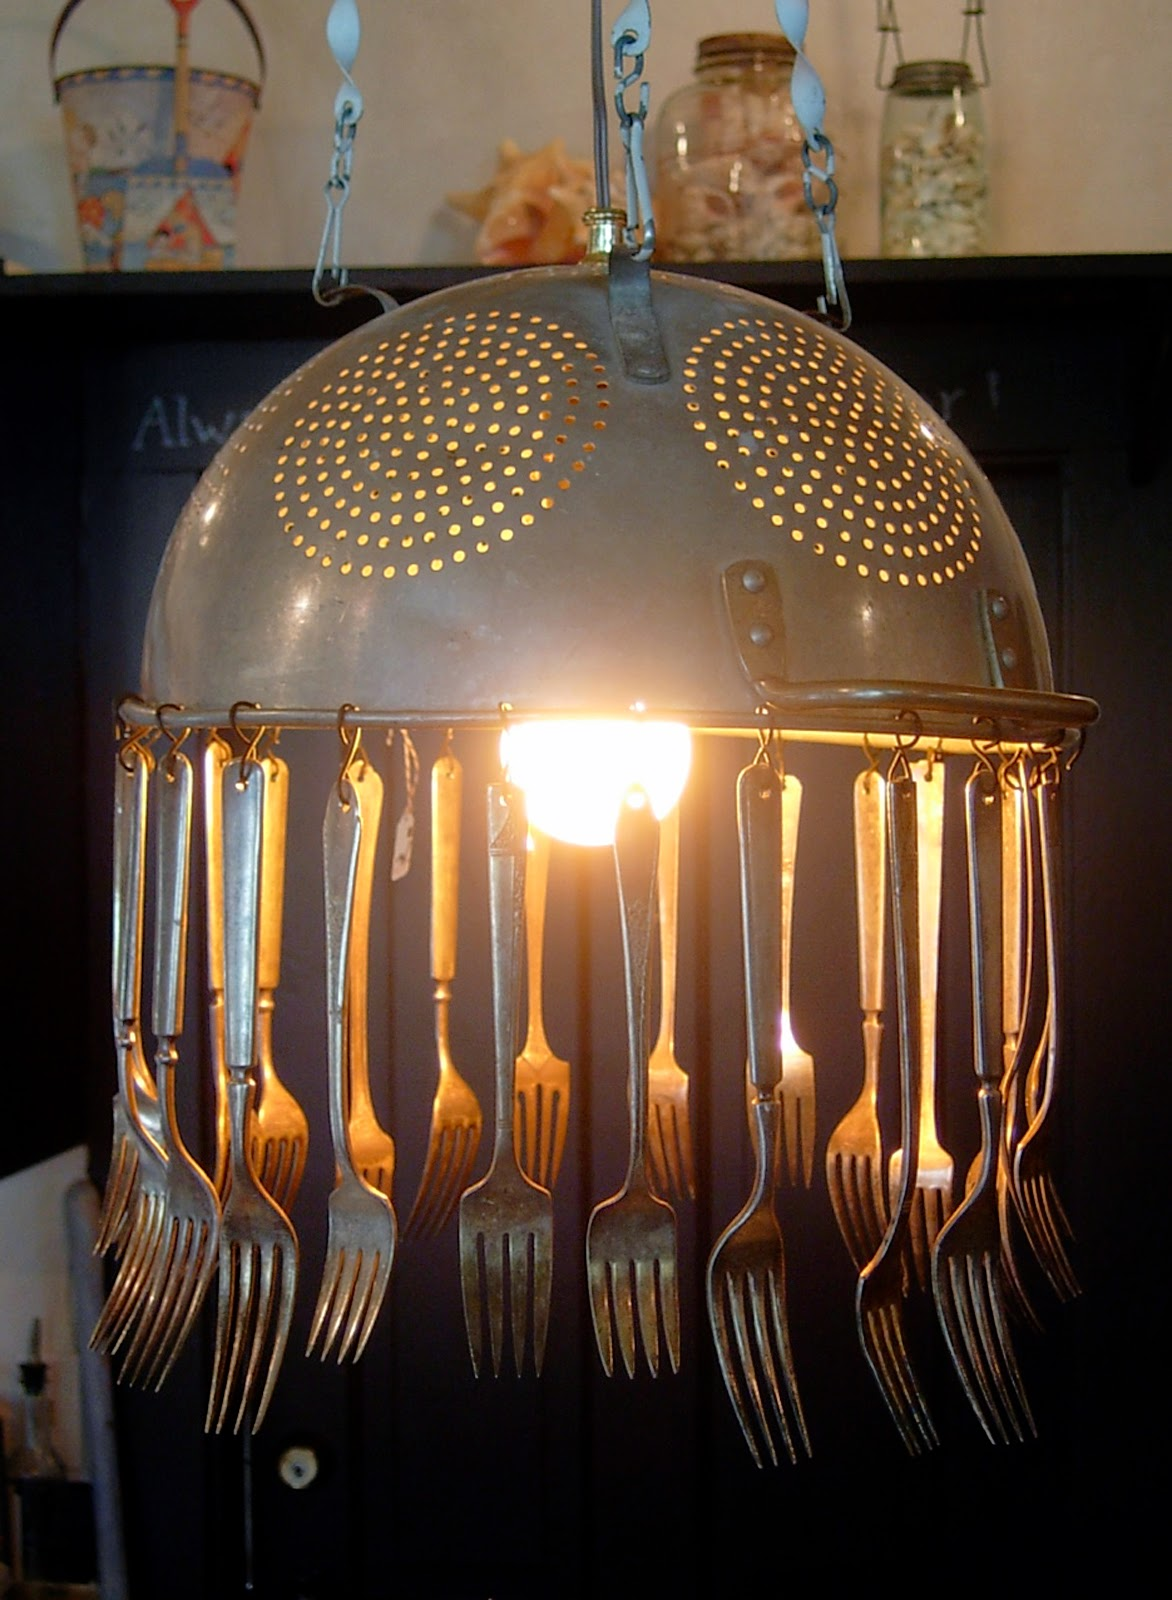 How To Recycle Recycled Kitchen Utensils